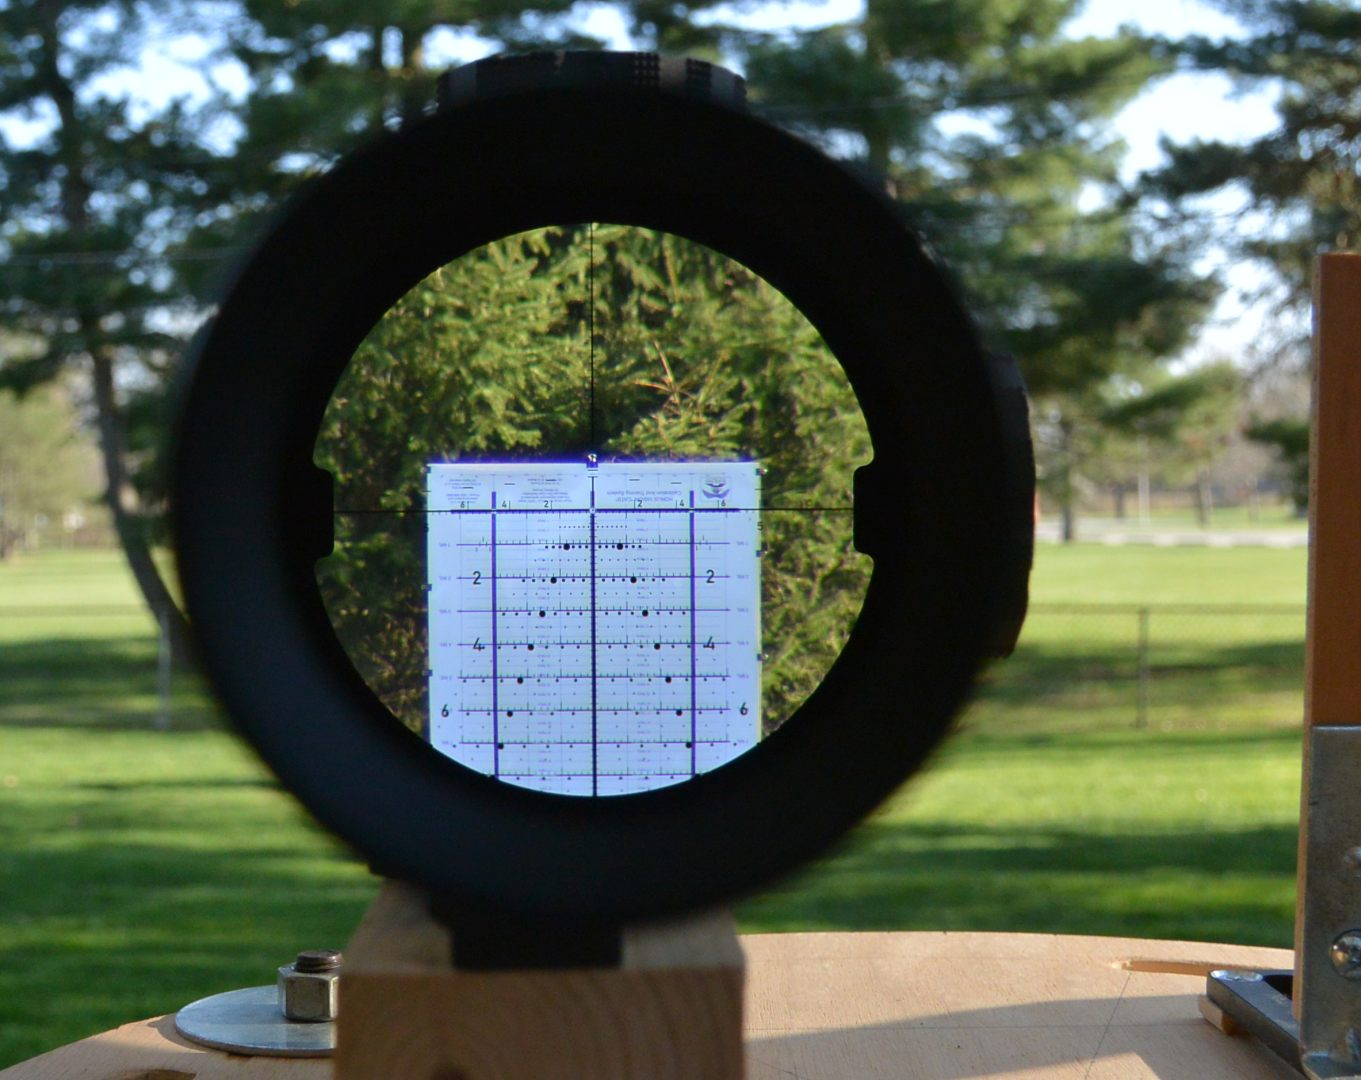 Sig Tango6 5-30x56 strapped in for mechanical testing  using the Horus CATS tall target